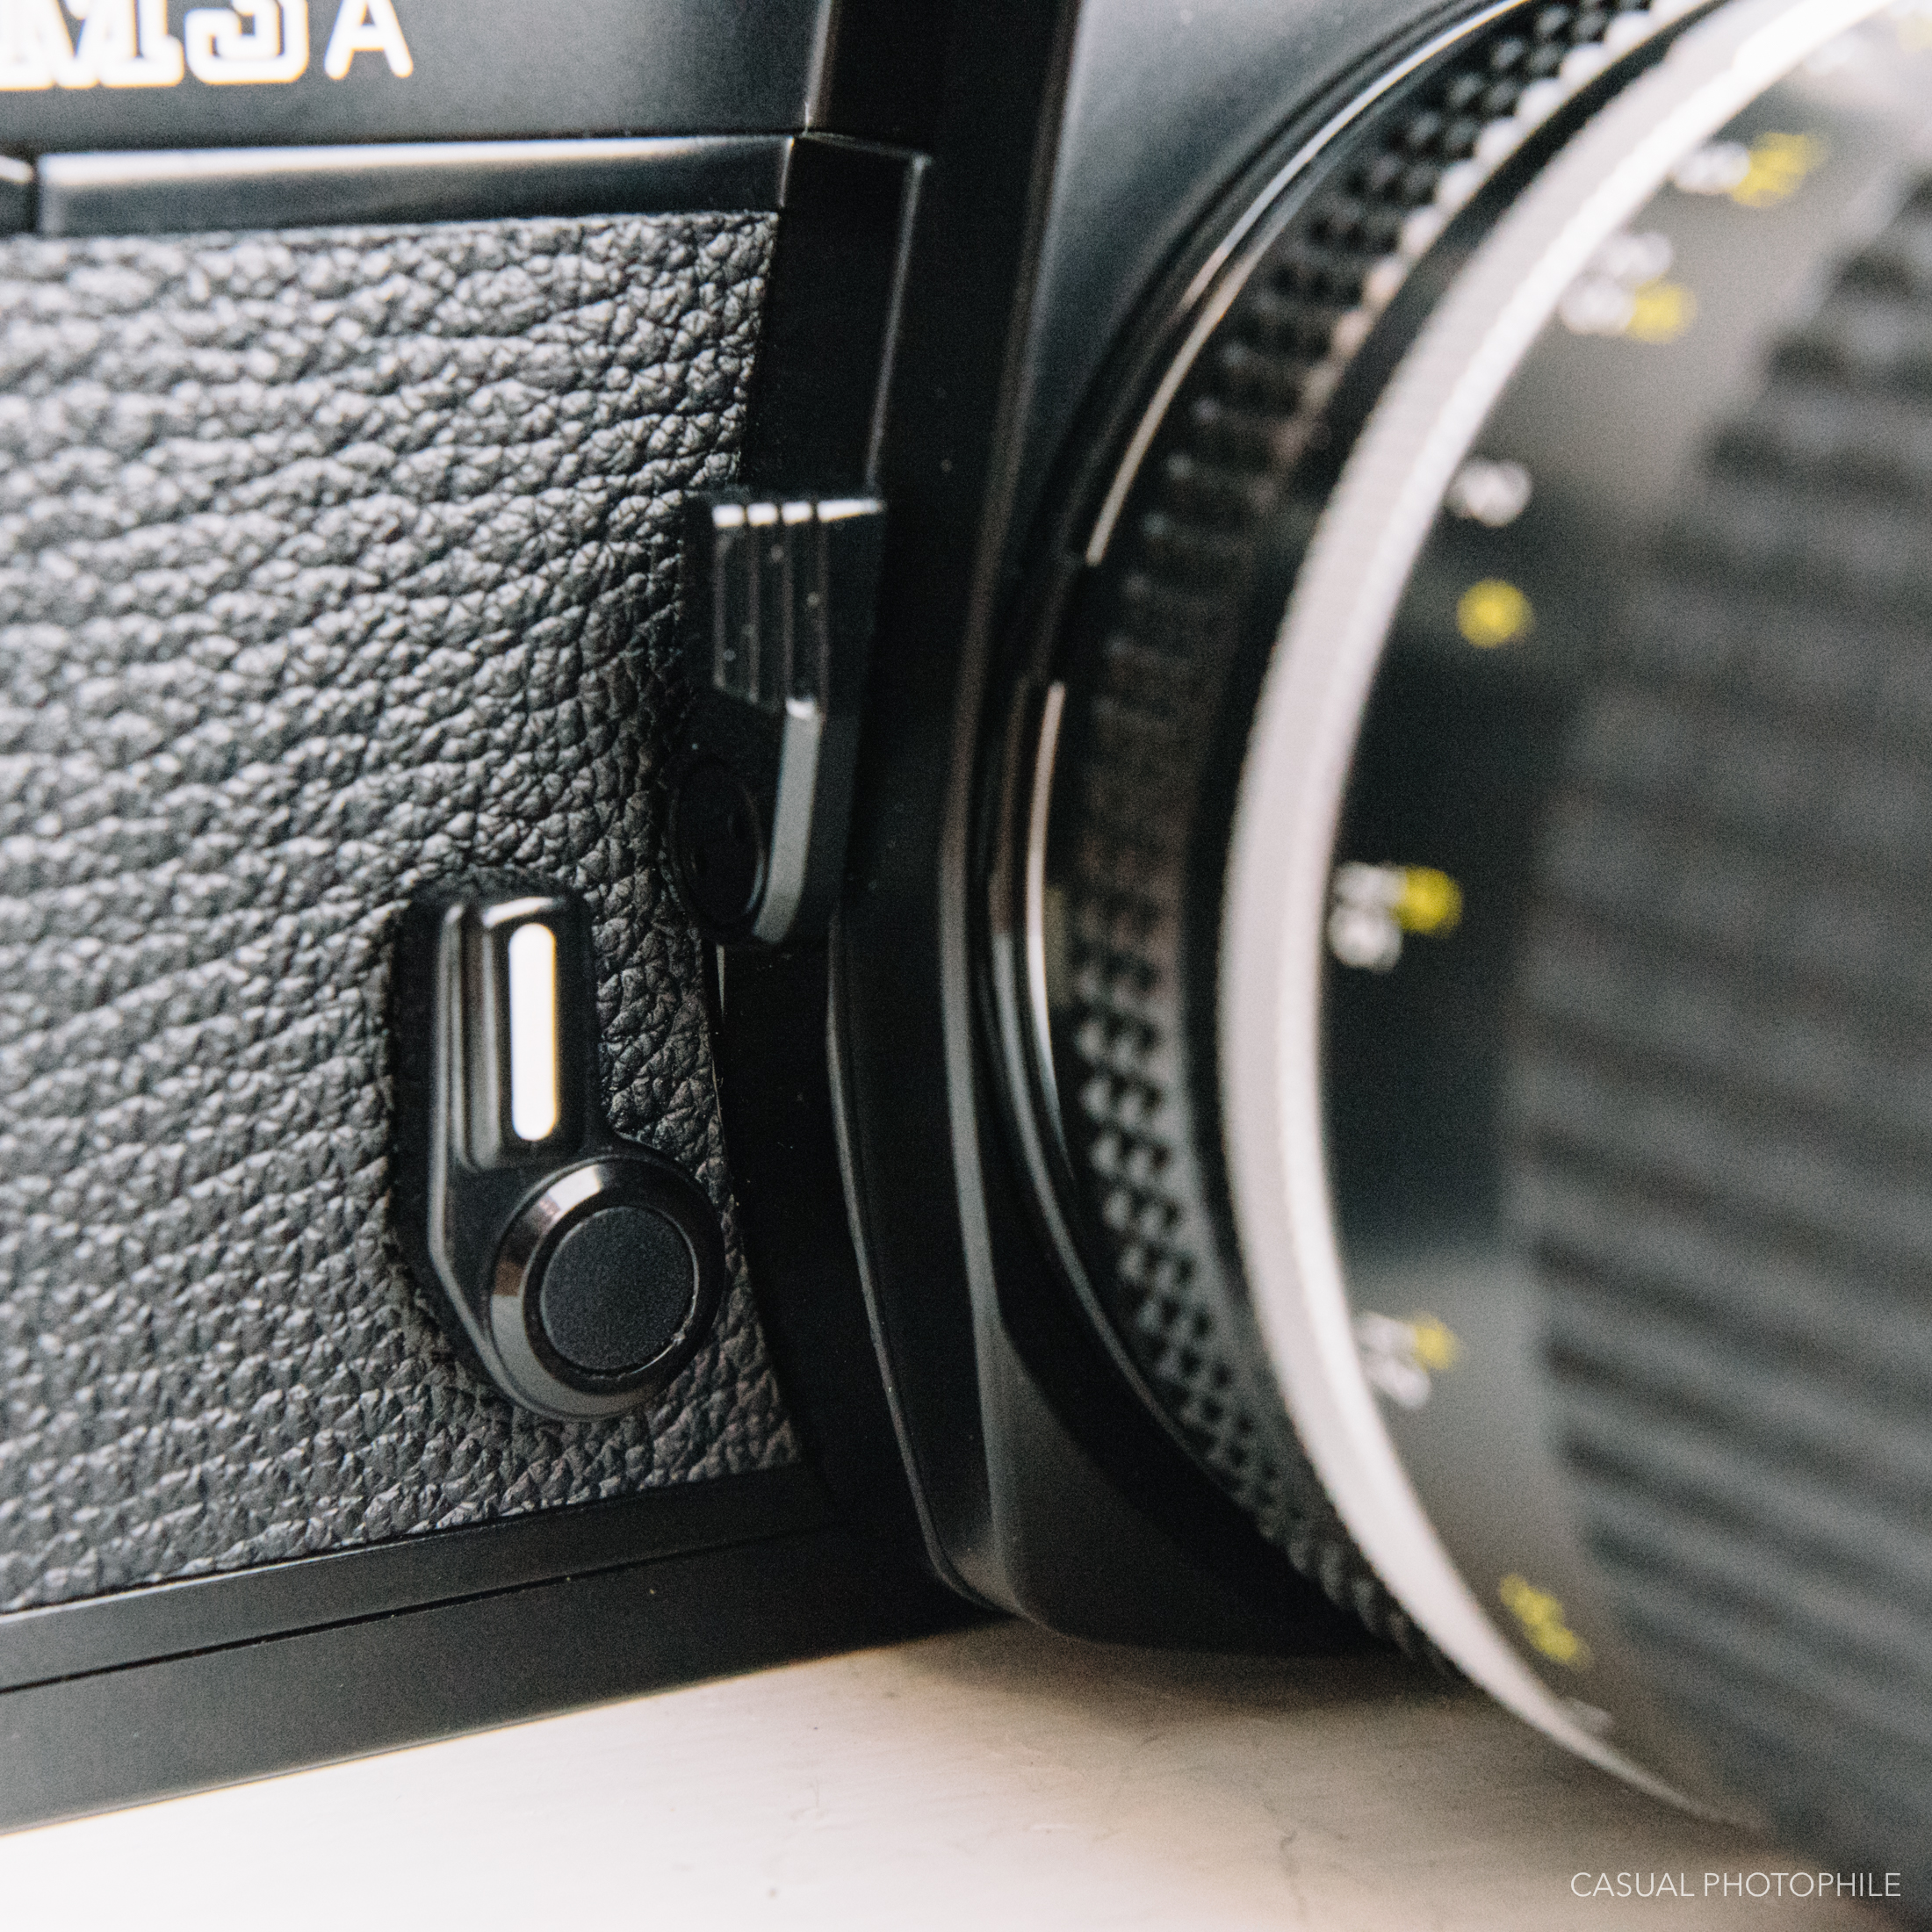 Nikon FM3a Review - A Nearly Perfect SLR - Casual Photophile